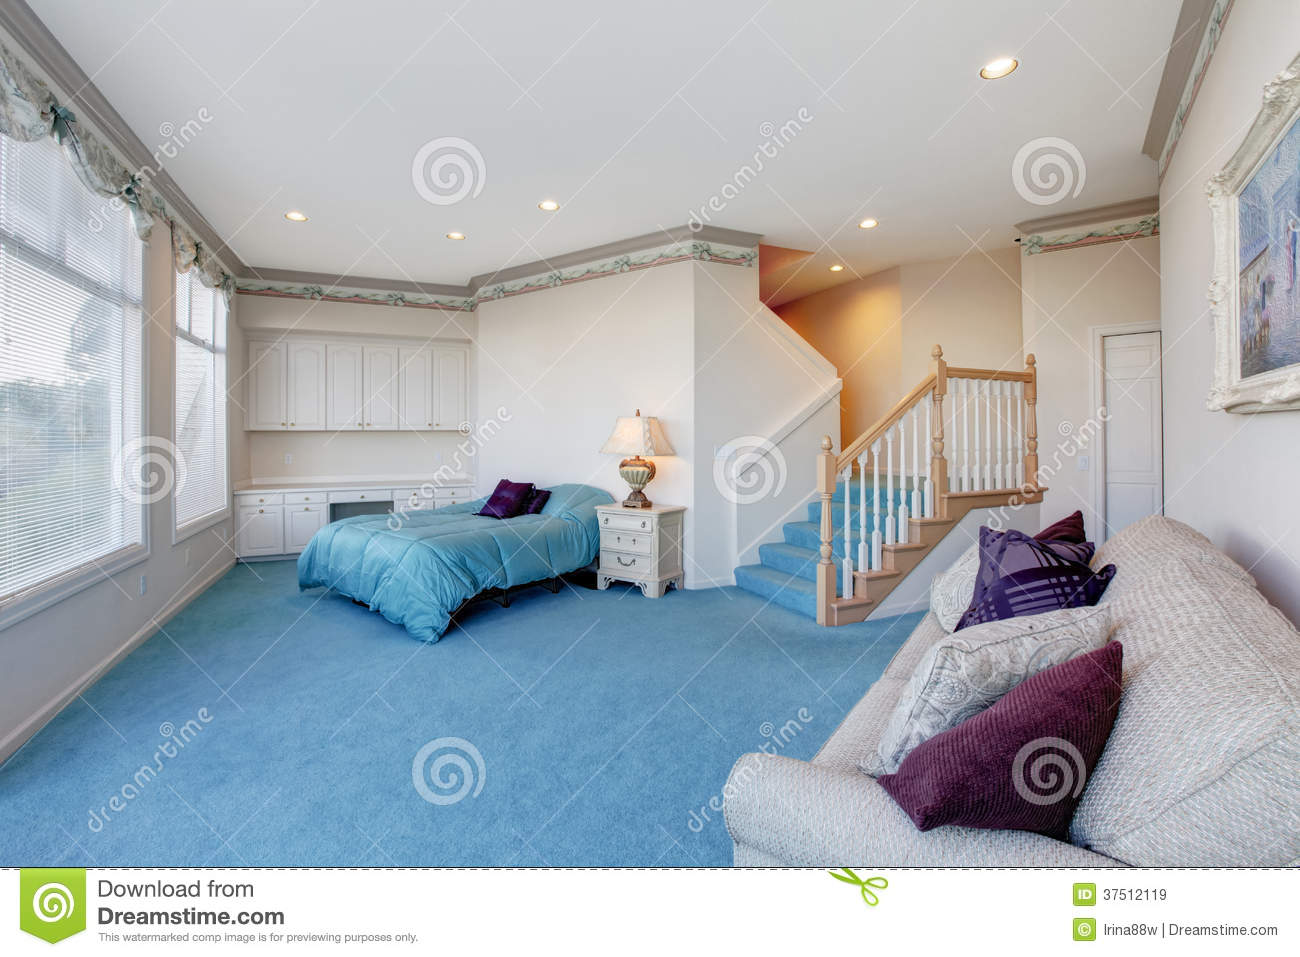 Light Blue And White Bedroom amazing light blue and white bedroom with glass wall royalty free